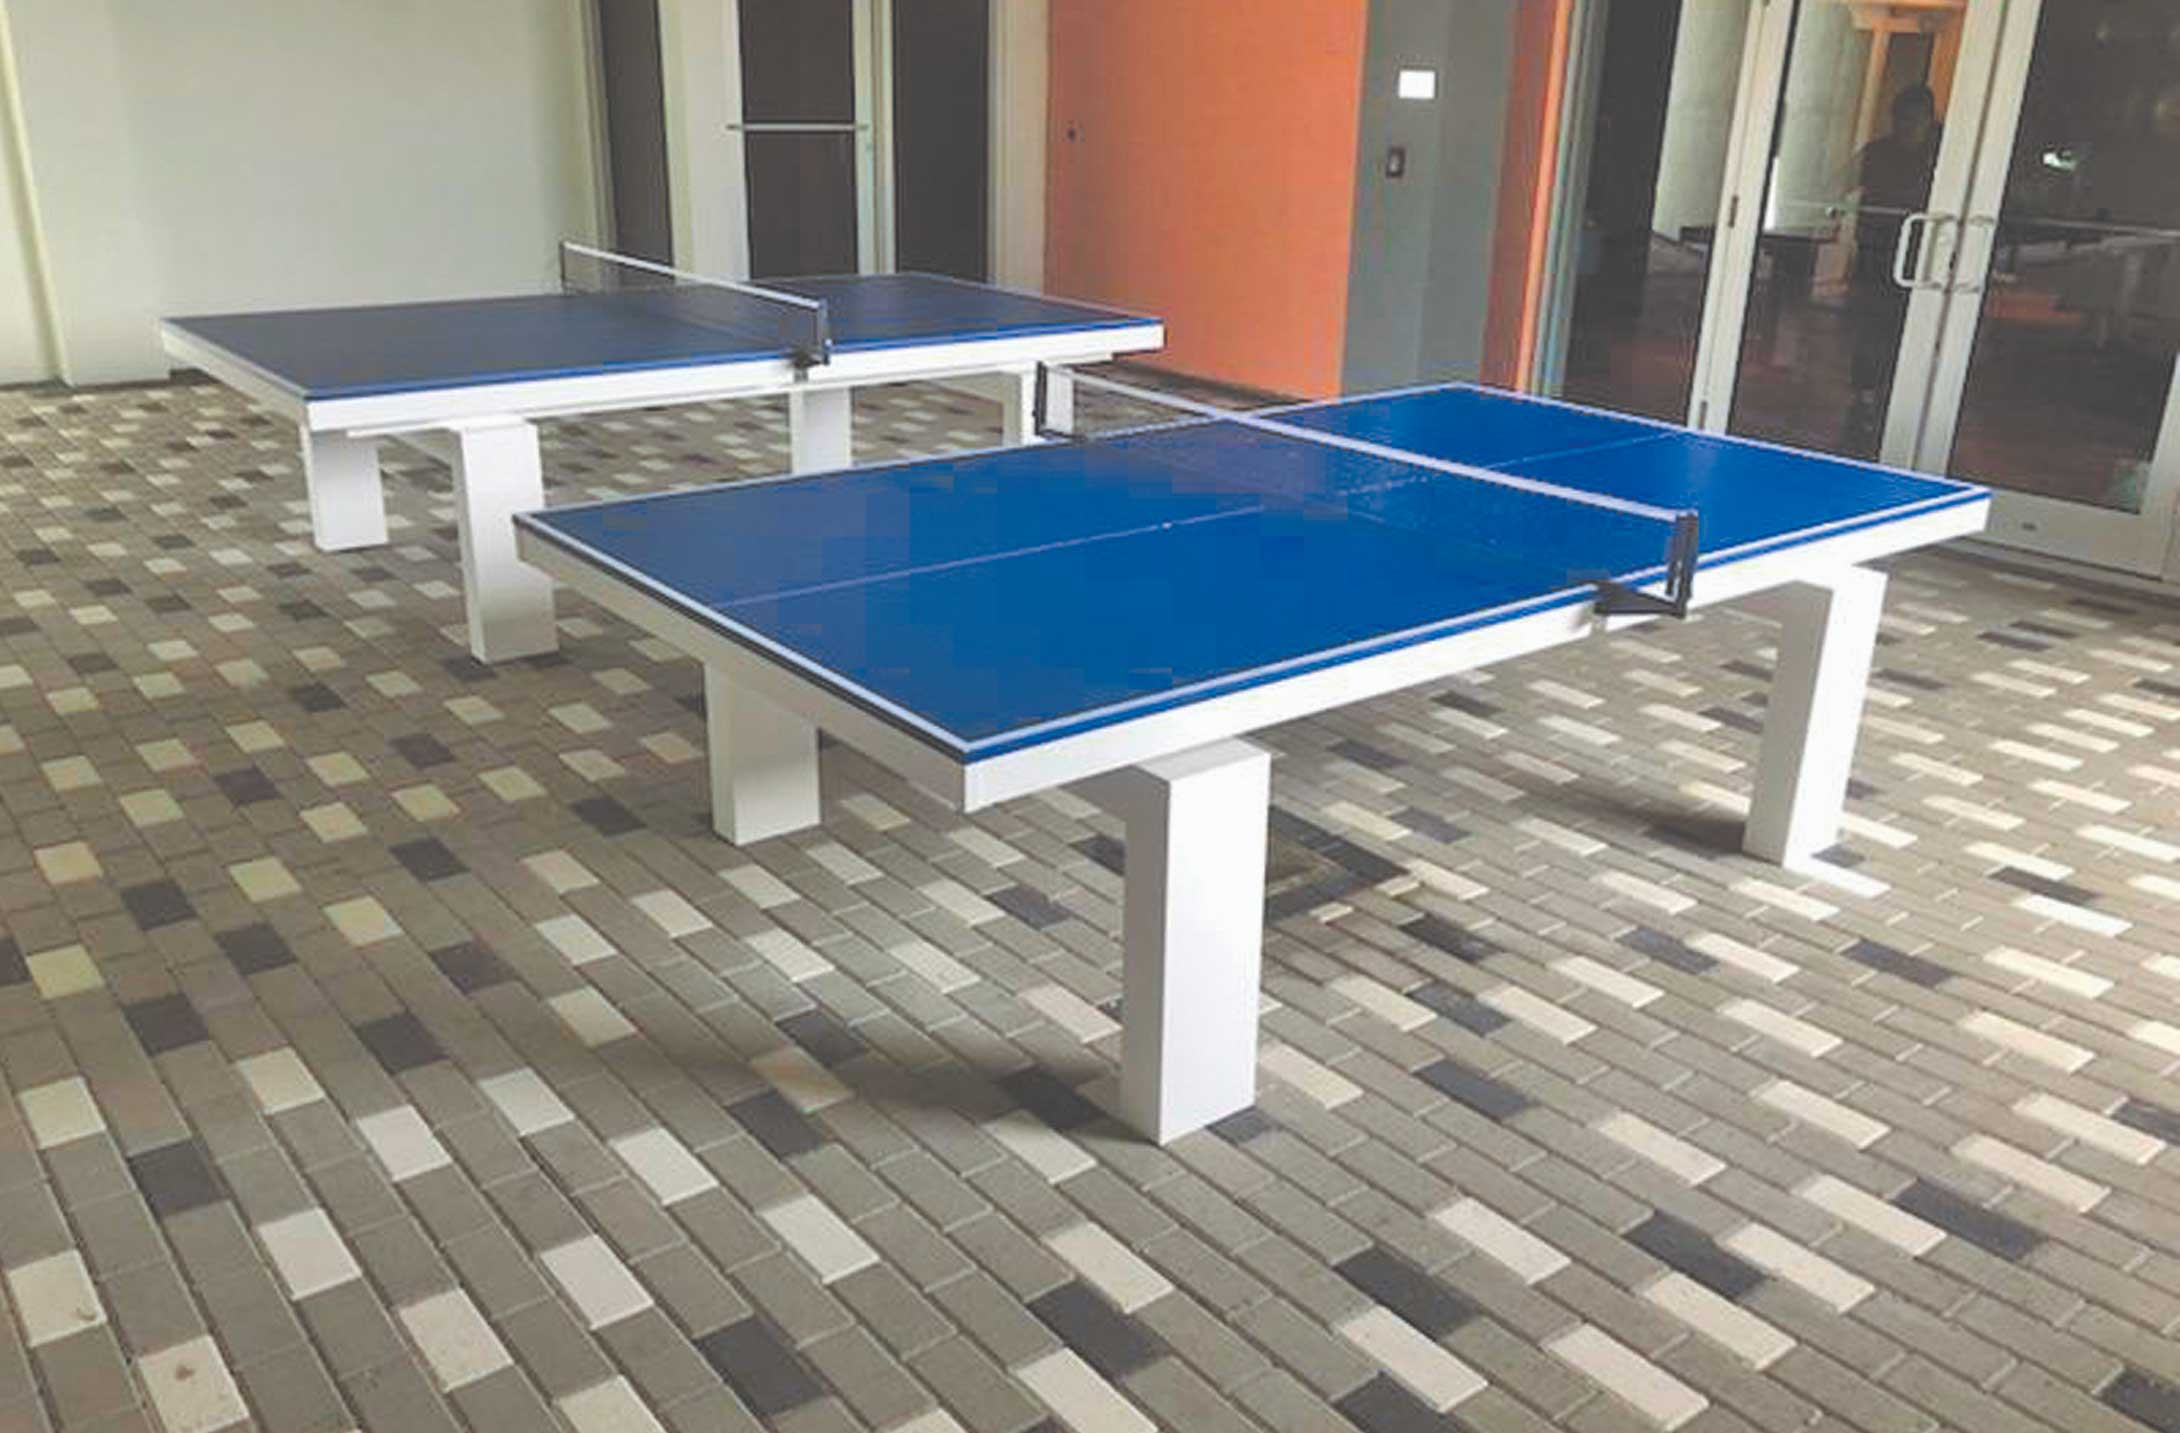 Table Tennis Ping Pong Table R R Outdoors Inc All Weather Billiards